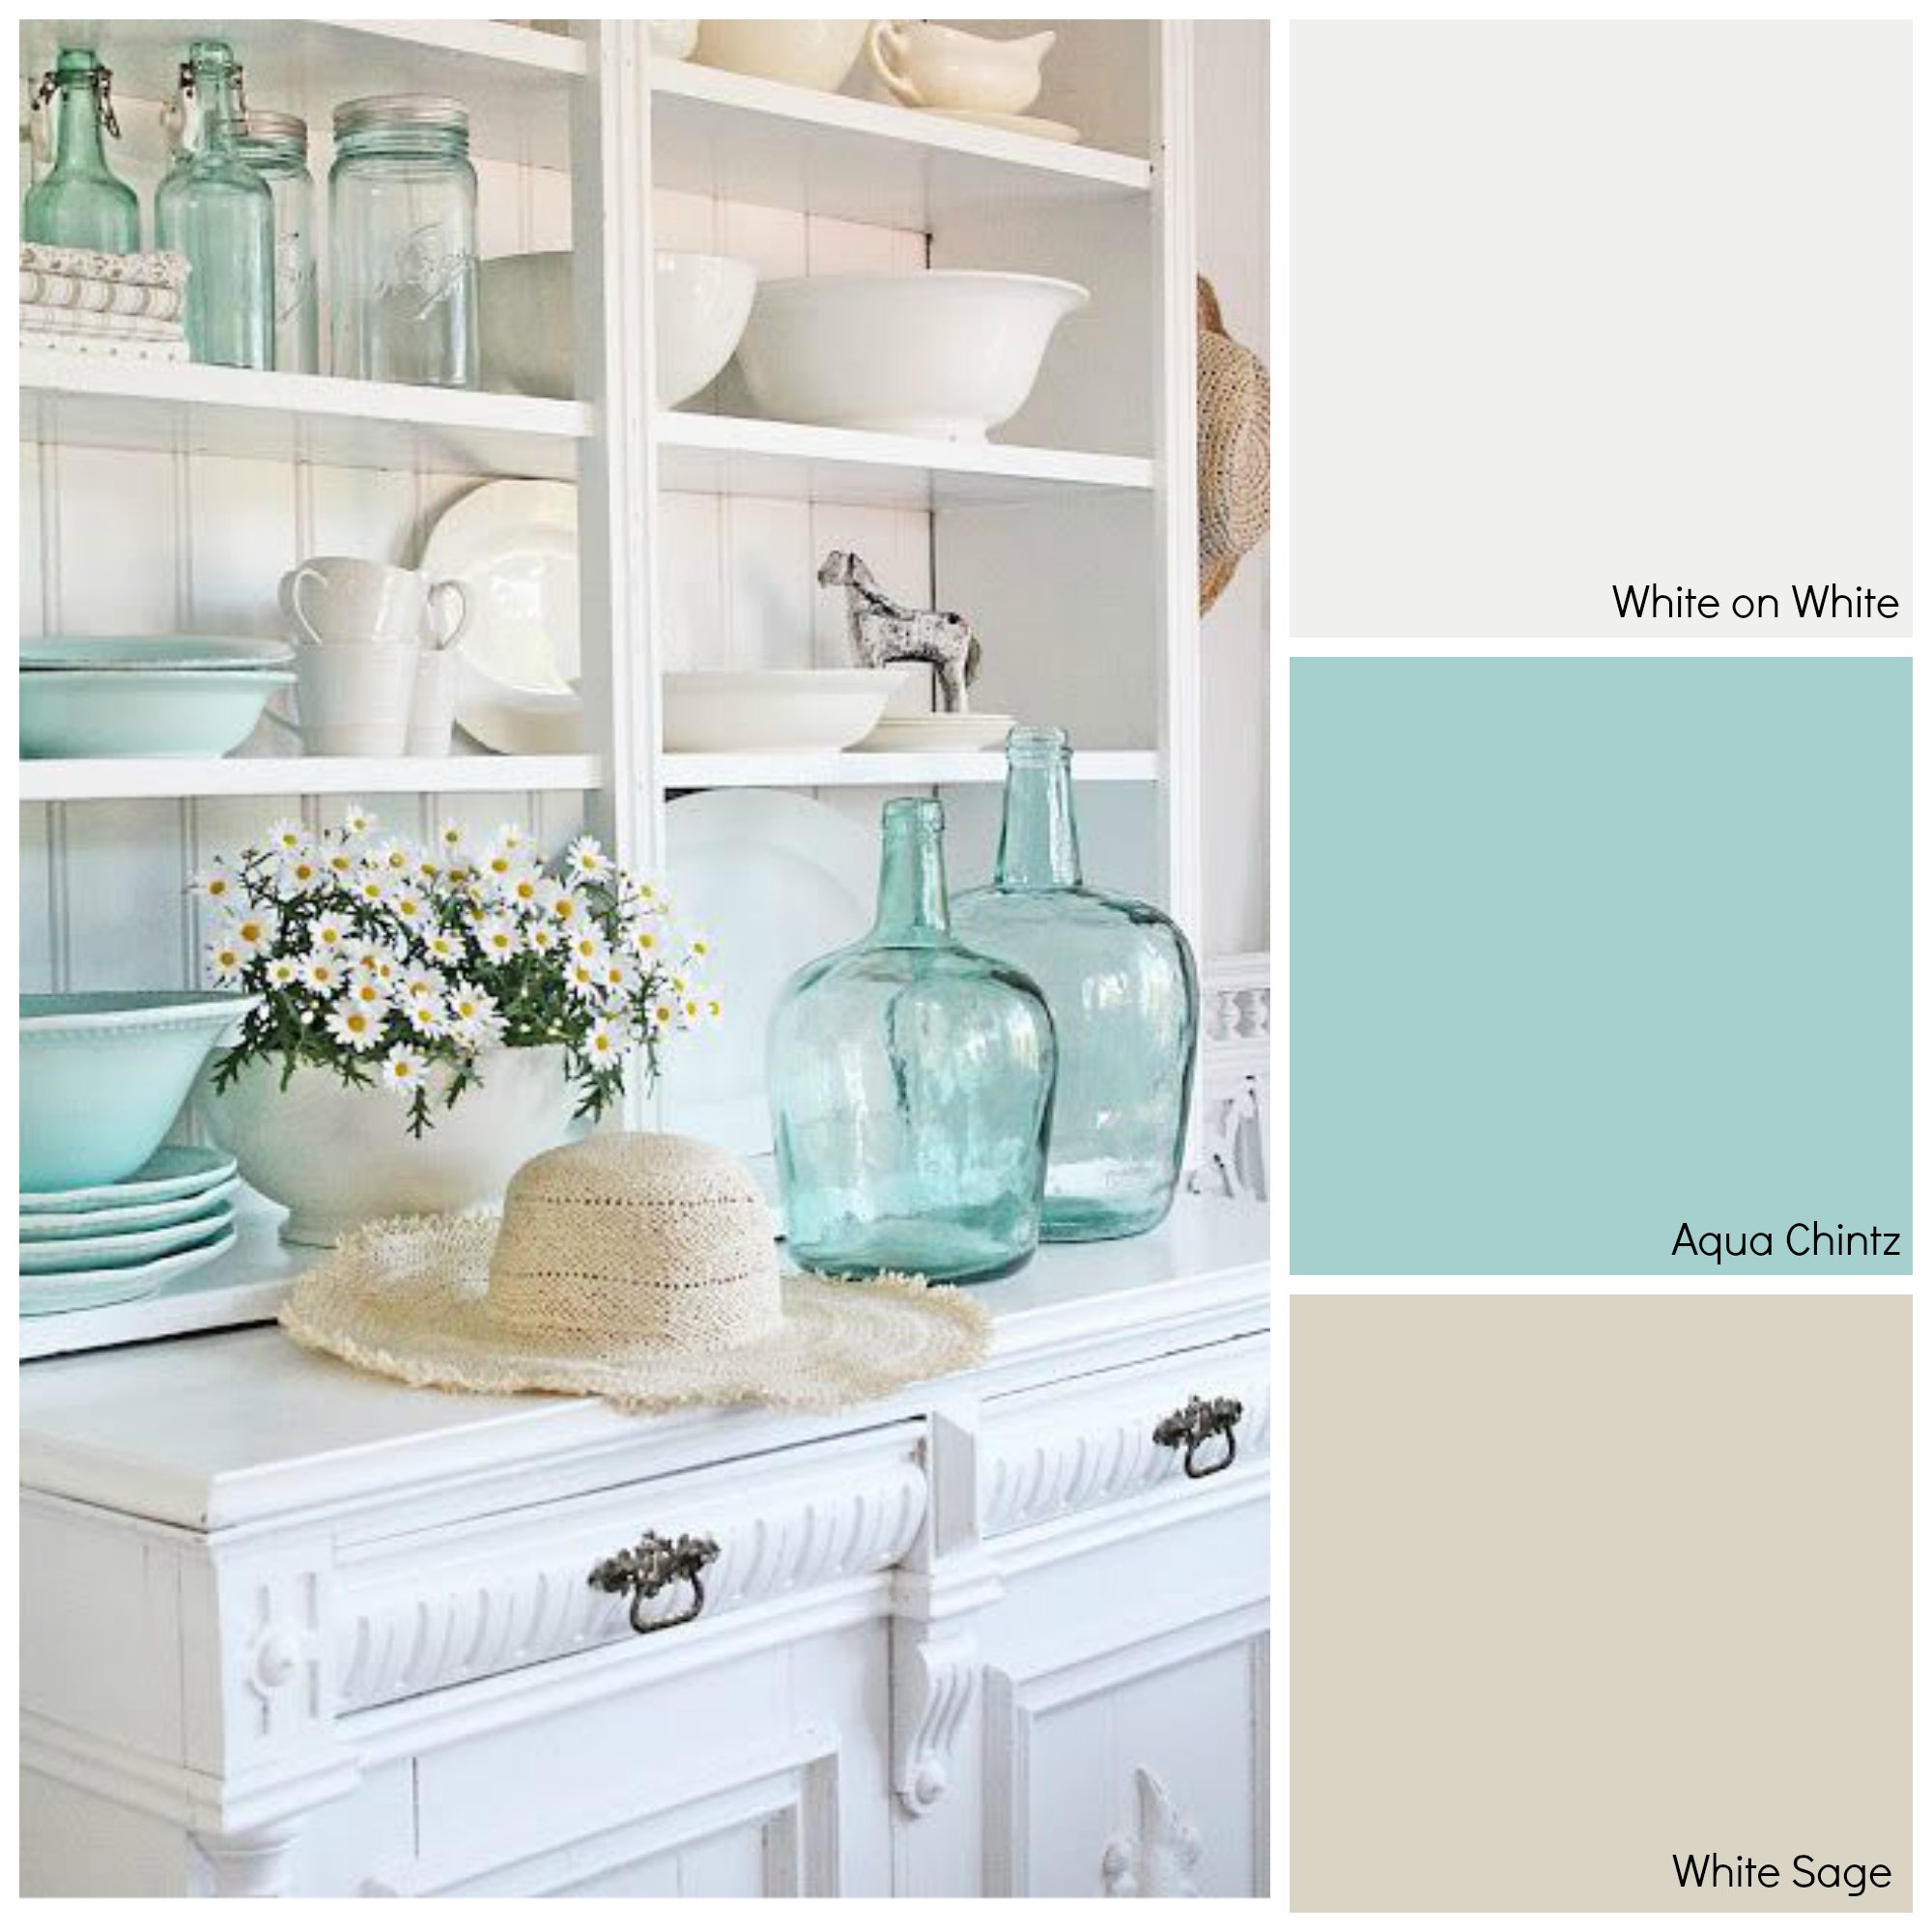 Bring the seaside look to your home with these 4 trends